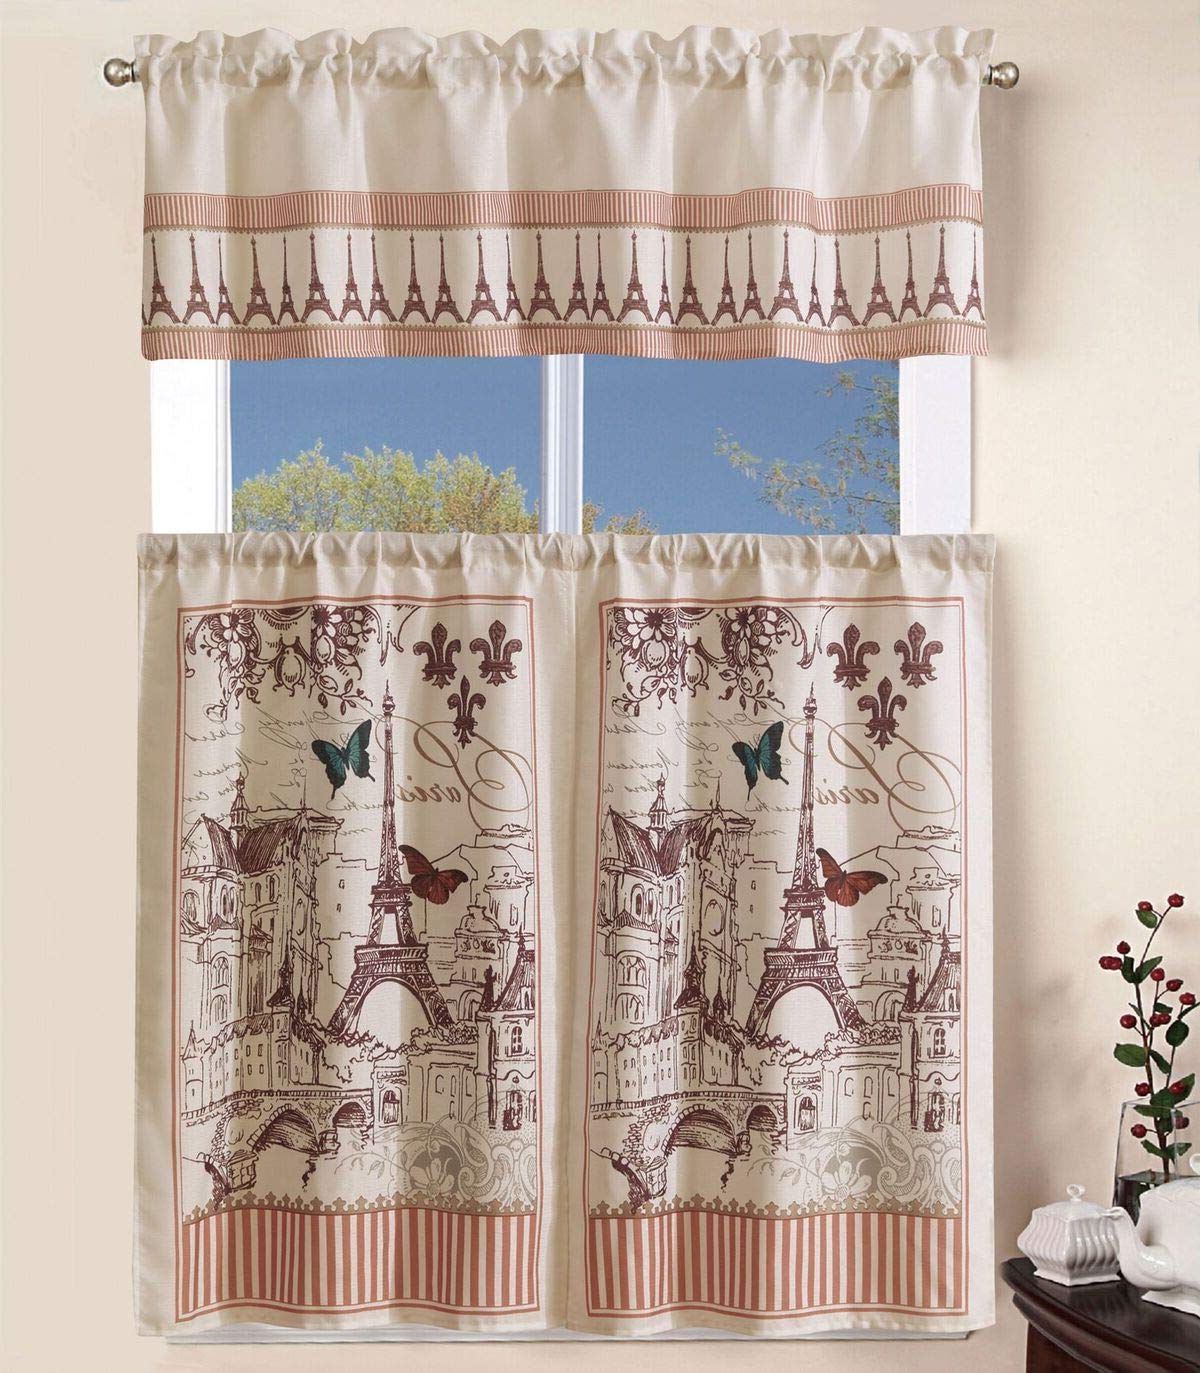 "Microfiber 3 Piece Kitchen Curtain Valance And Tiers Sets In Favorite Superior Home 3 Piece Kitchen Curtain Linen Set With 2 Tiers 27"" W (total Width 54"") X 36"" L And 1 Tailored Valance 54"" W X 15"" L, France Paris Eiffel (View 8 of 20)"